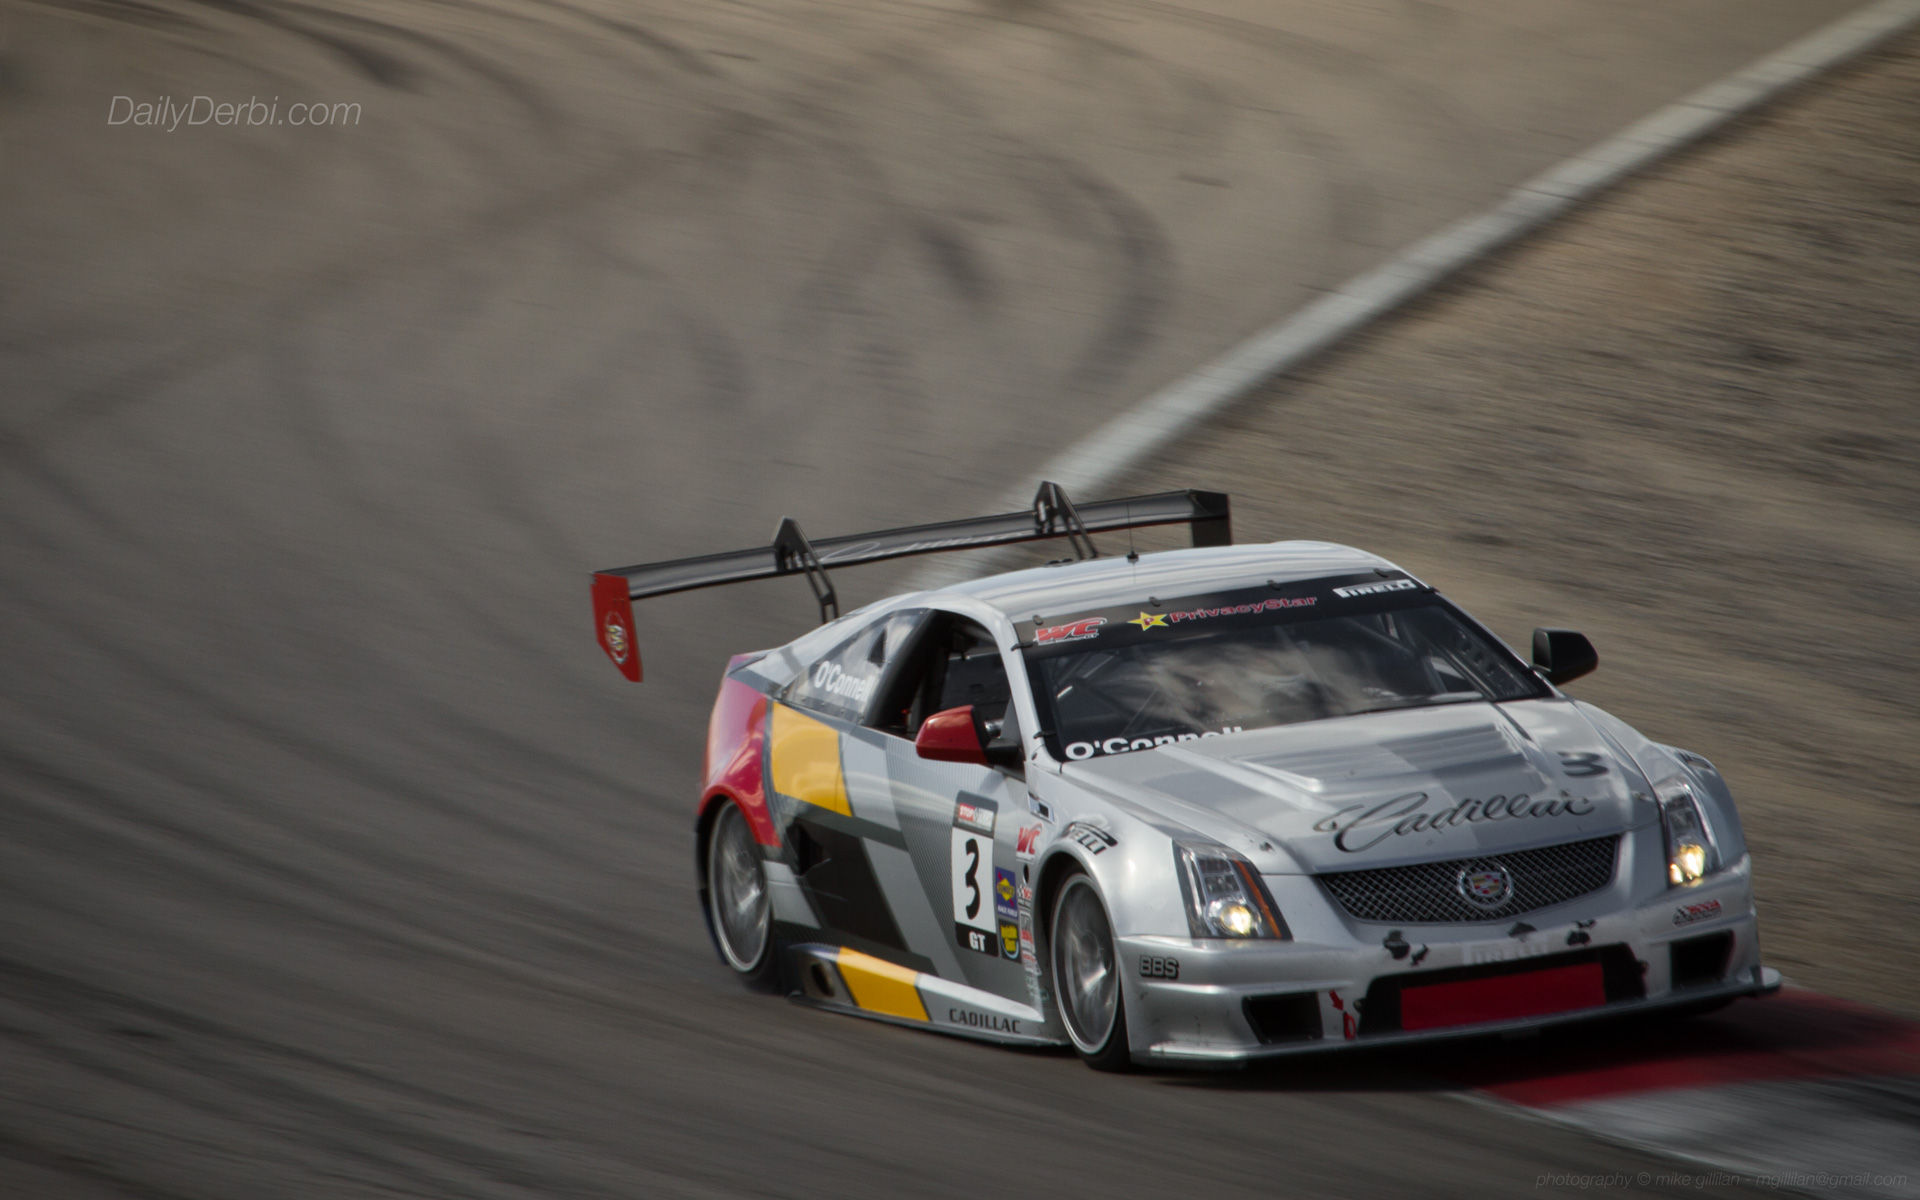 Weekend Wallpaper Cadillac CTS V Coupe Race Car The Daily Derbi 1920x1200